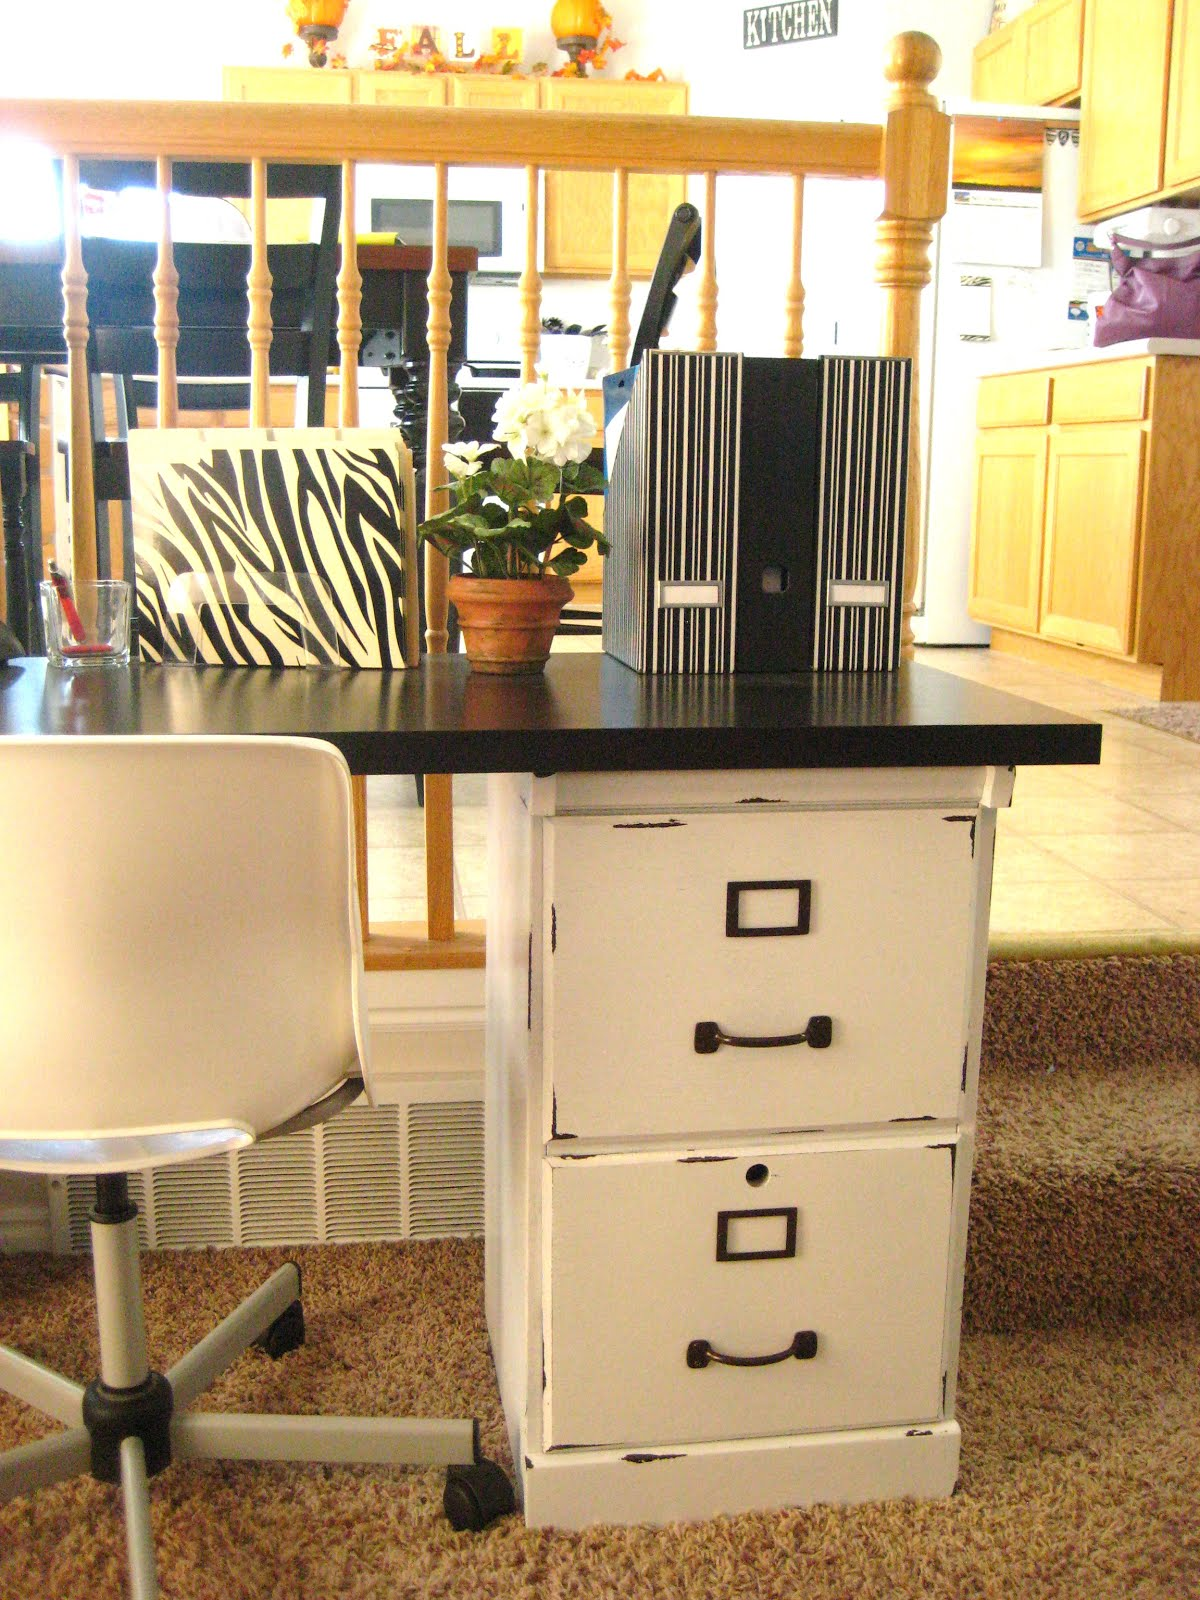 Your Crafty Friend: Before & After Filing Cabinets